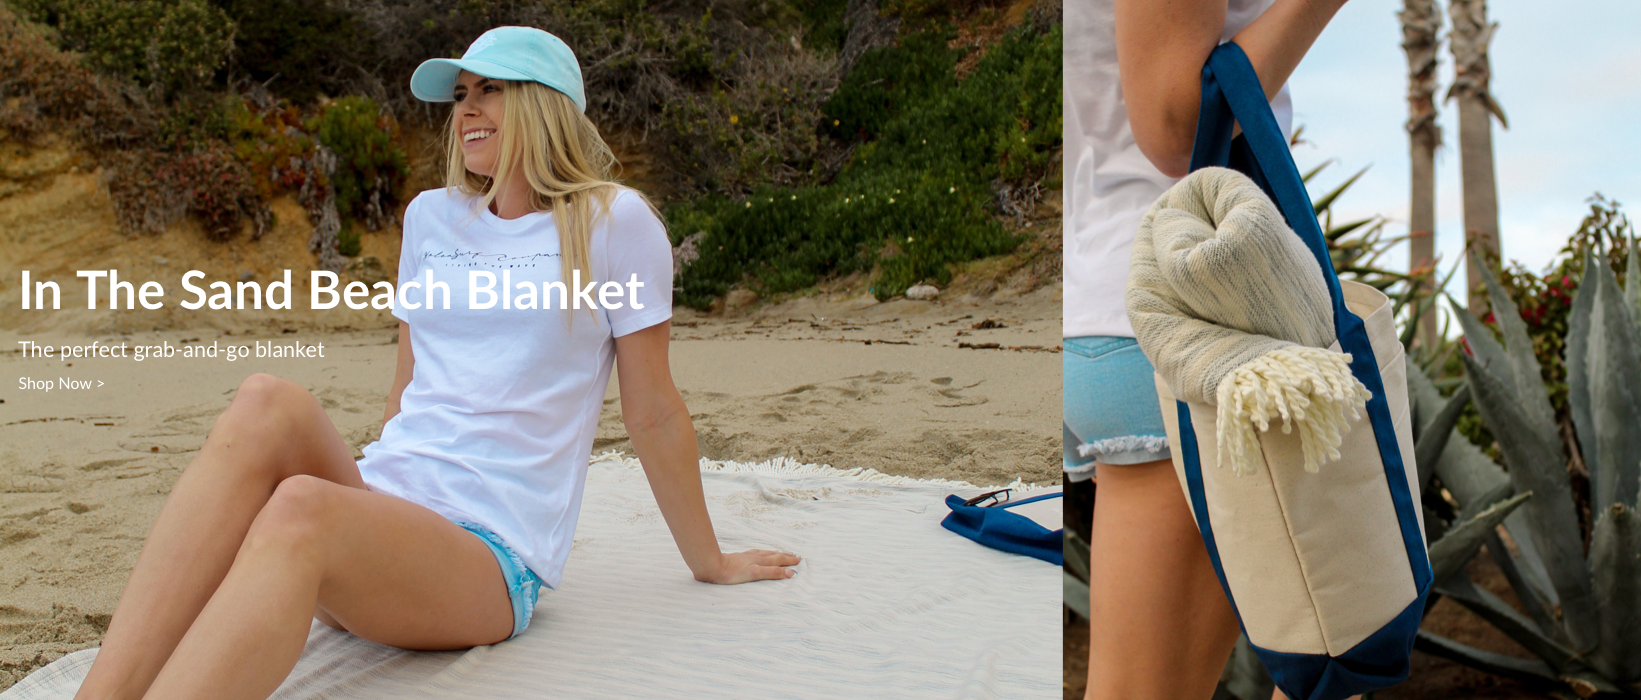 In The Sand Beach Blanket | The Perfect Grab-And-Go Blanket | Shop Now...